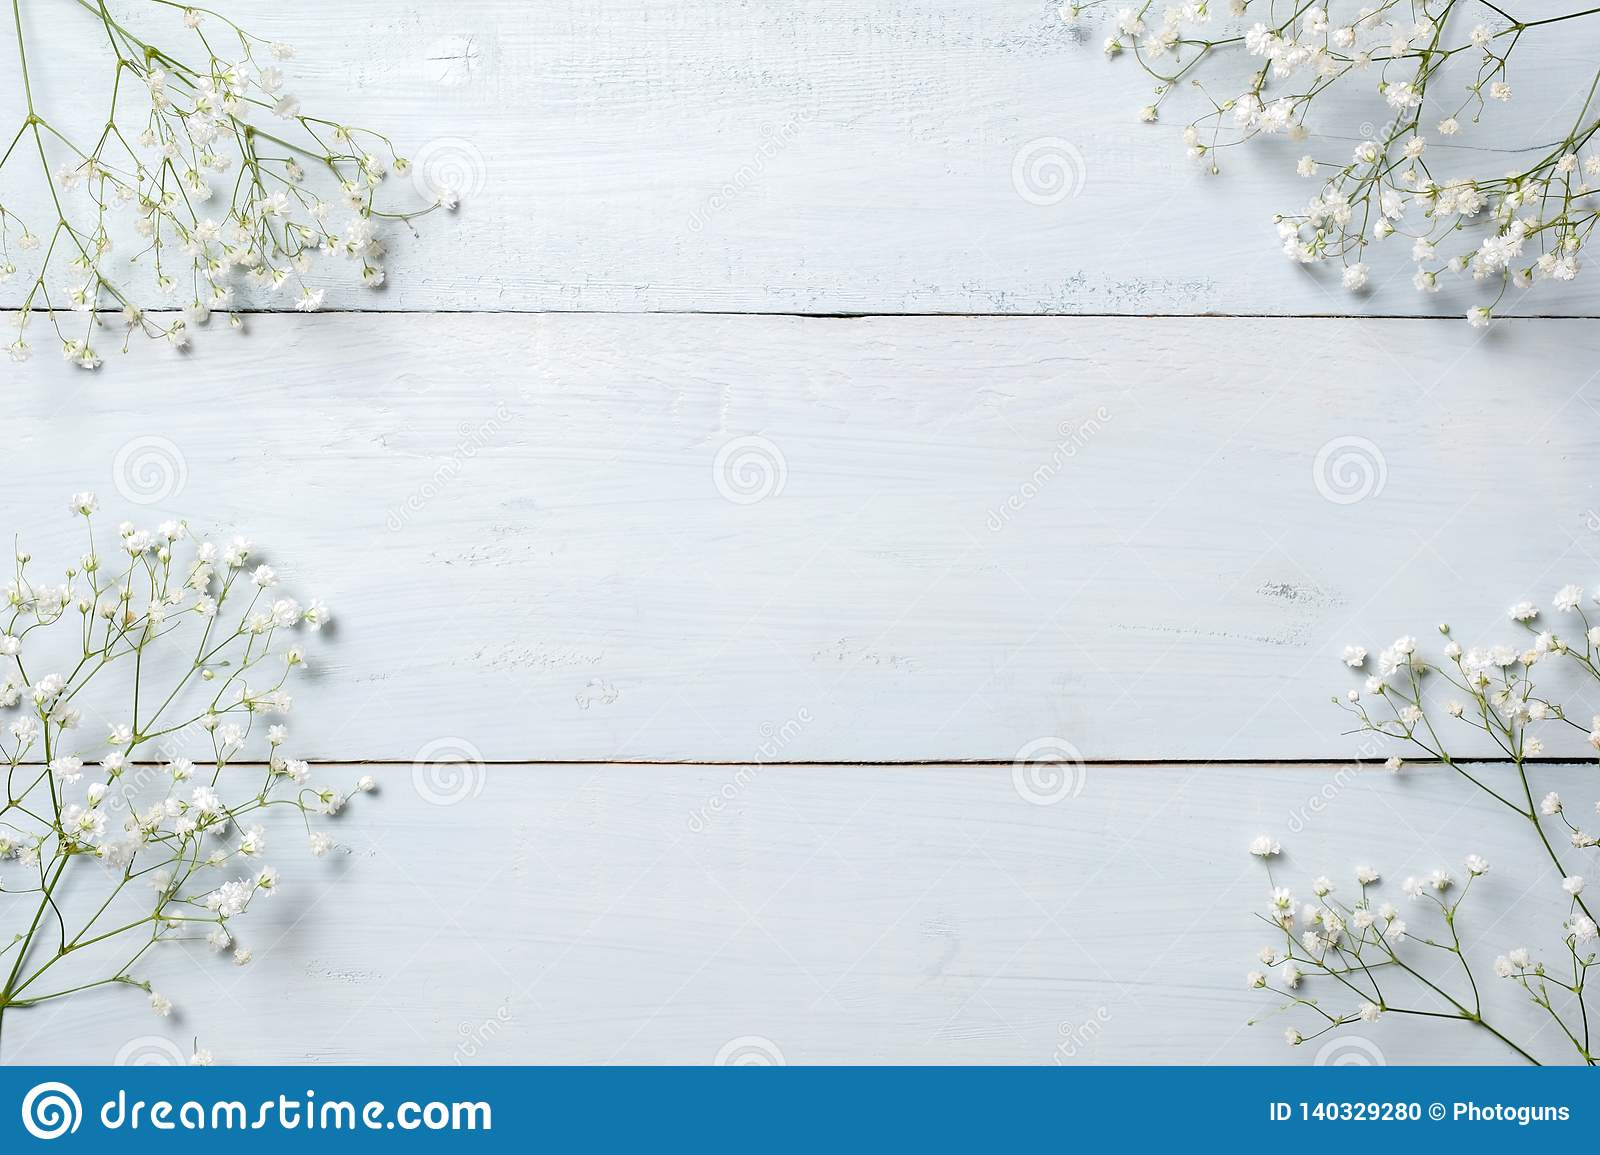 Spring background, flowers frame on blue wooden table. Banner mockup for Womans or Mothers Day, Easter, spring holidays. Flat lay,